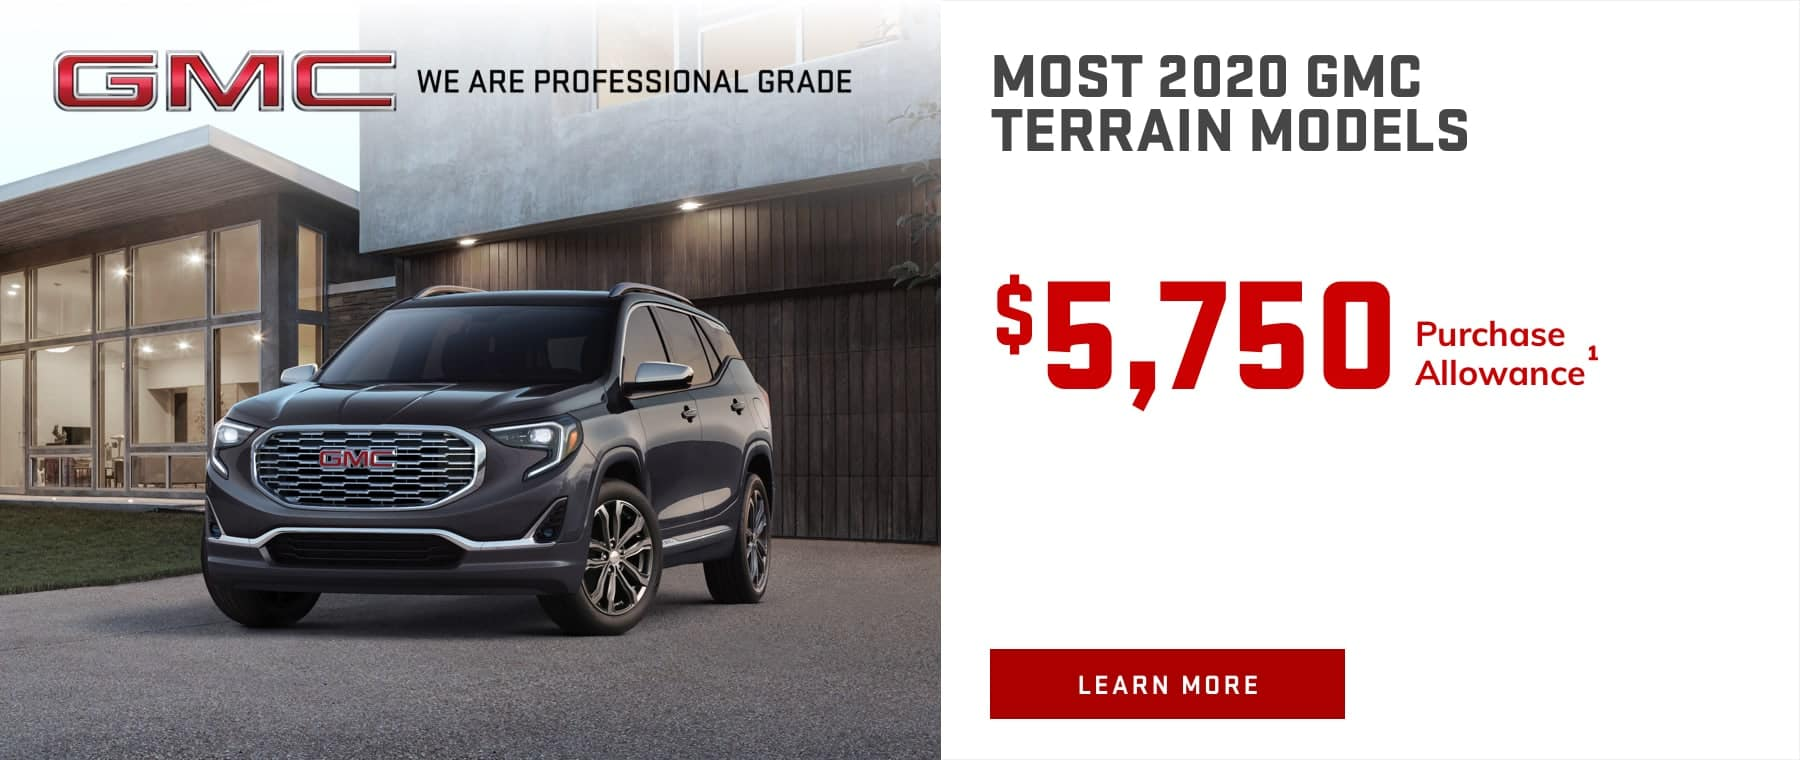 MOST 2020 GMC TERRAIN MODELS - $5,750 Purchase Allowance